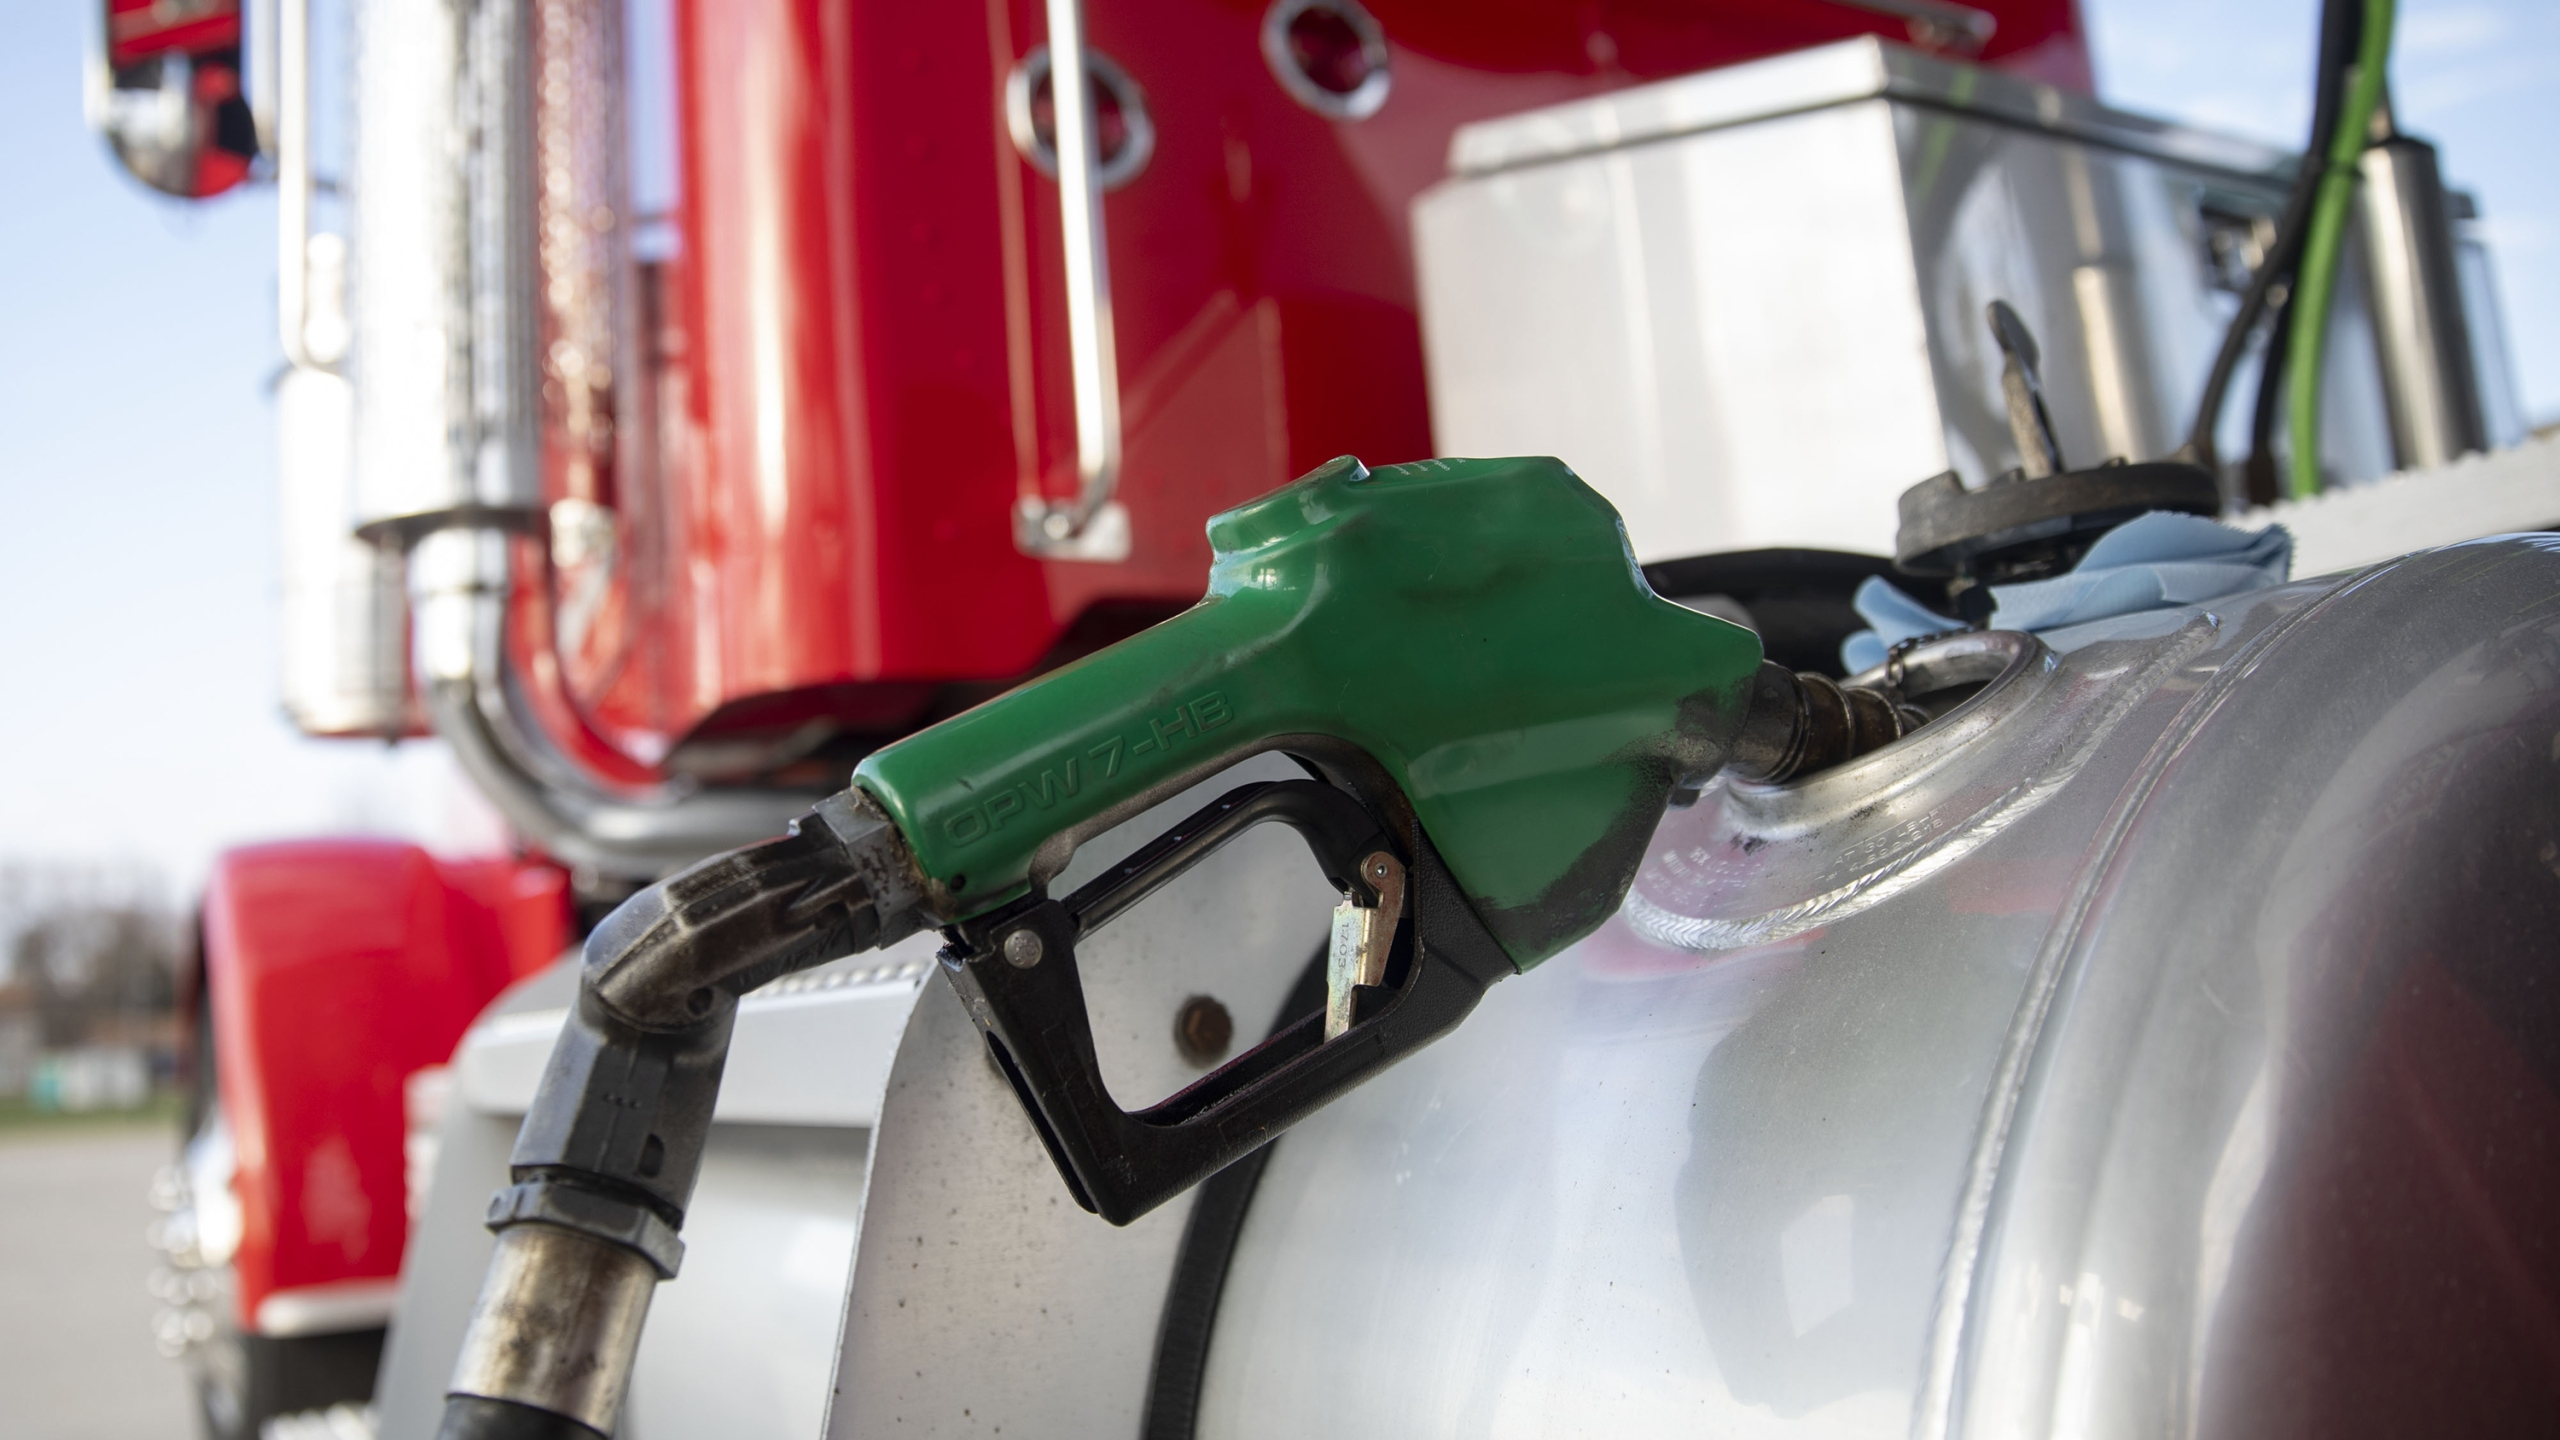 A filler nozzle pumps fuel into the gas tank of a tractor trailer in a file photo. (Daniel Acker/Bloomberg/Getty Images)